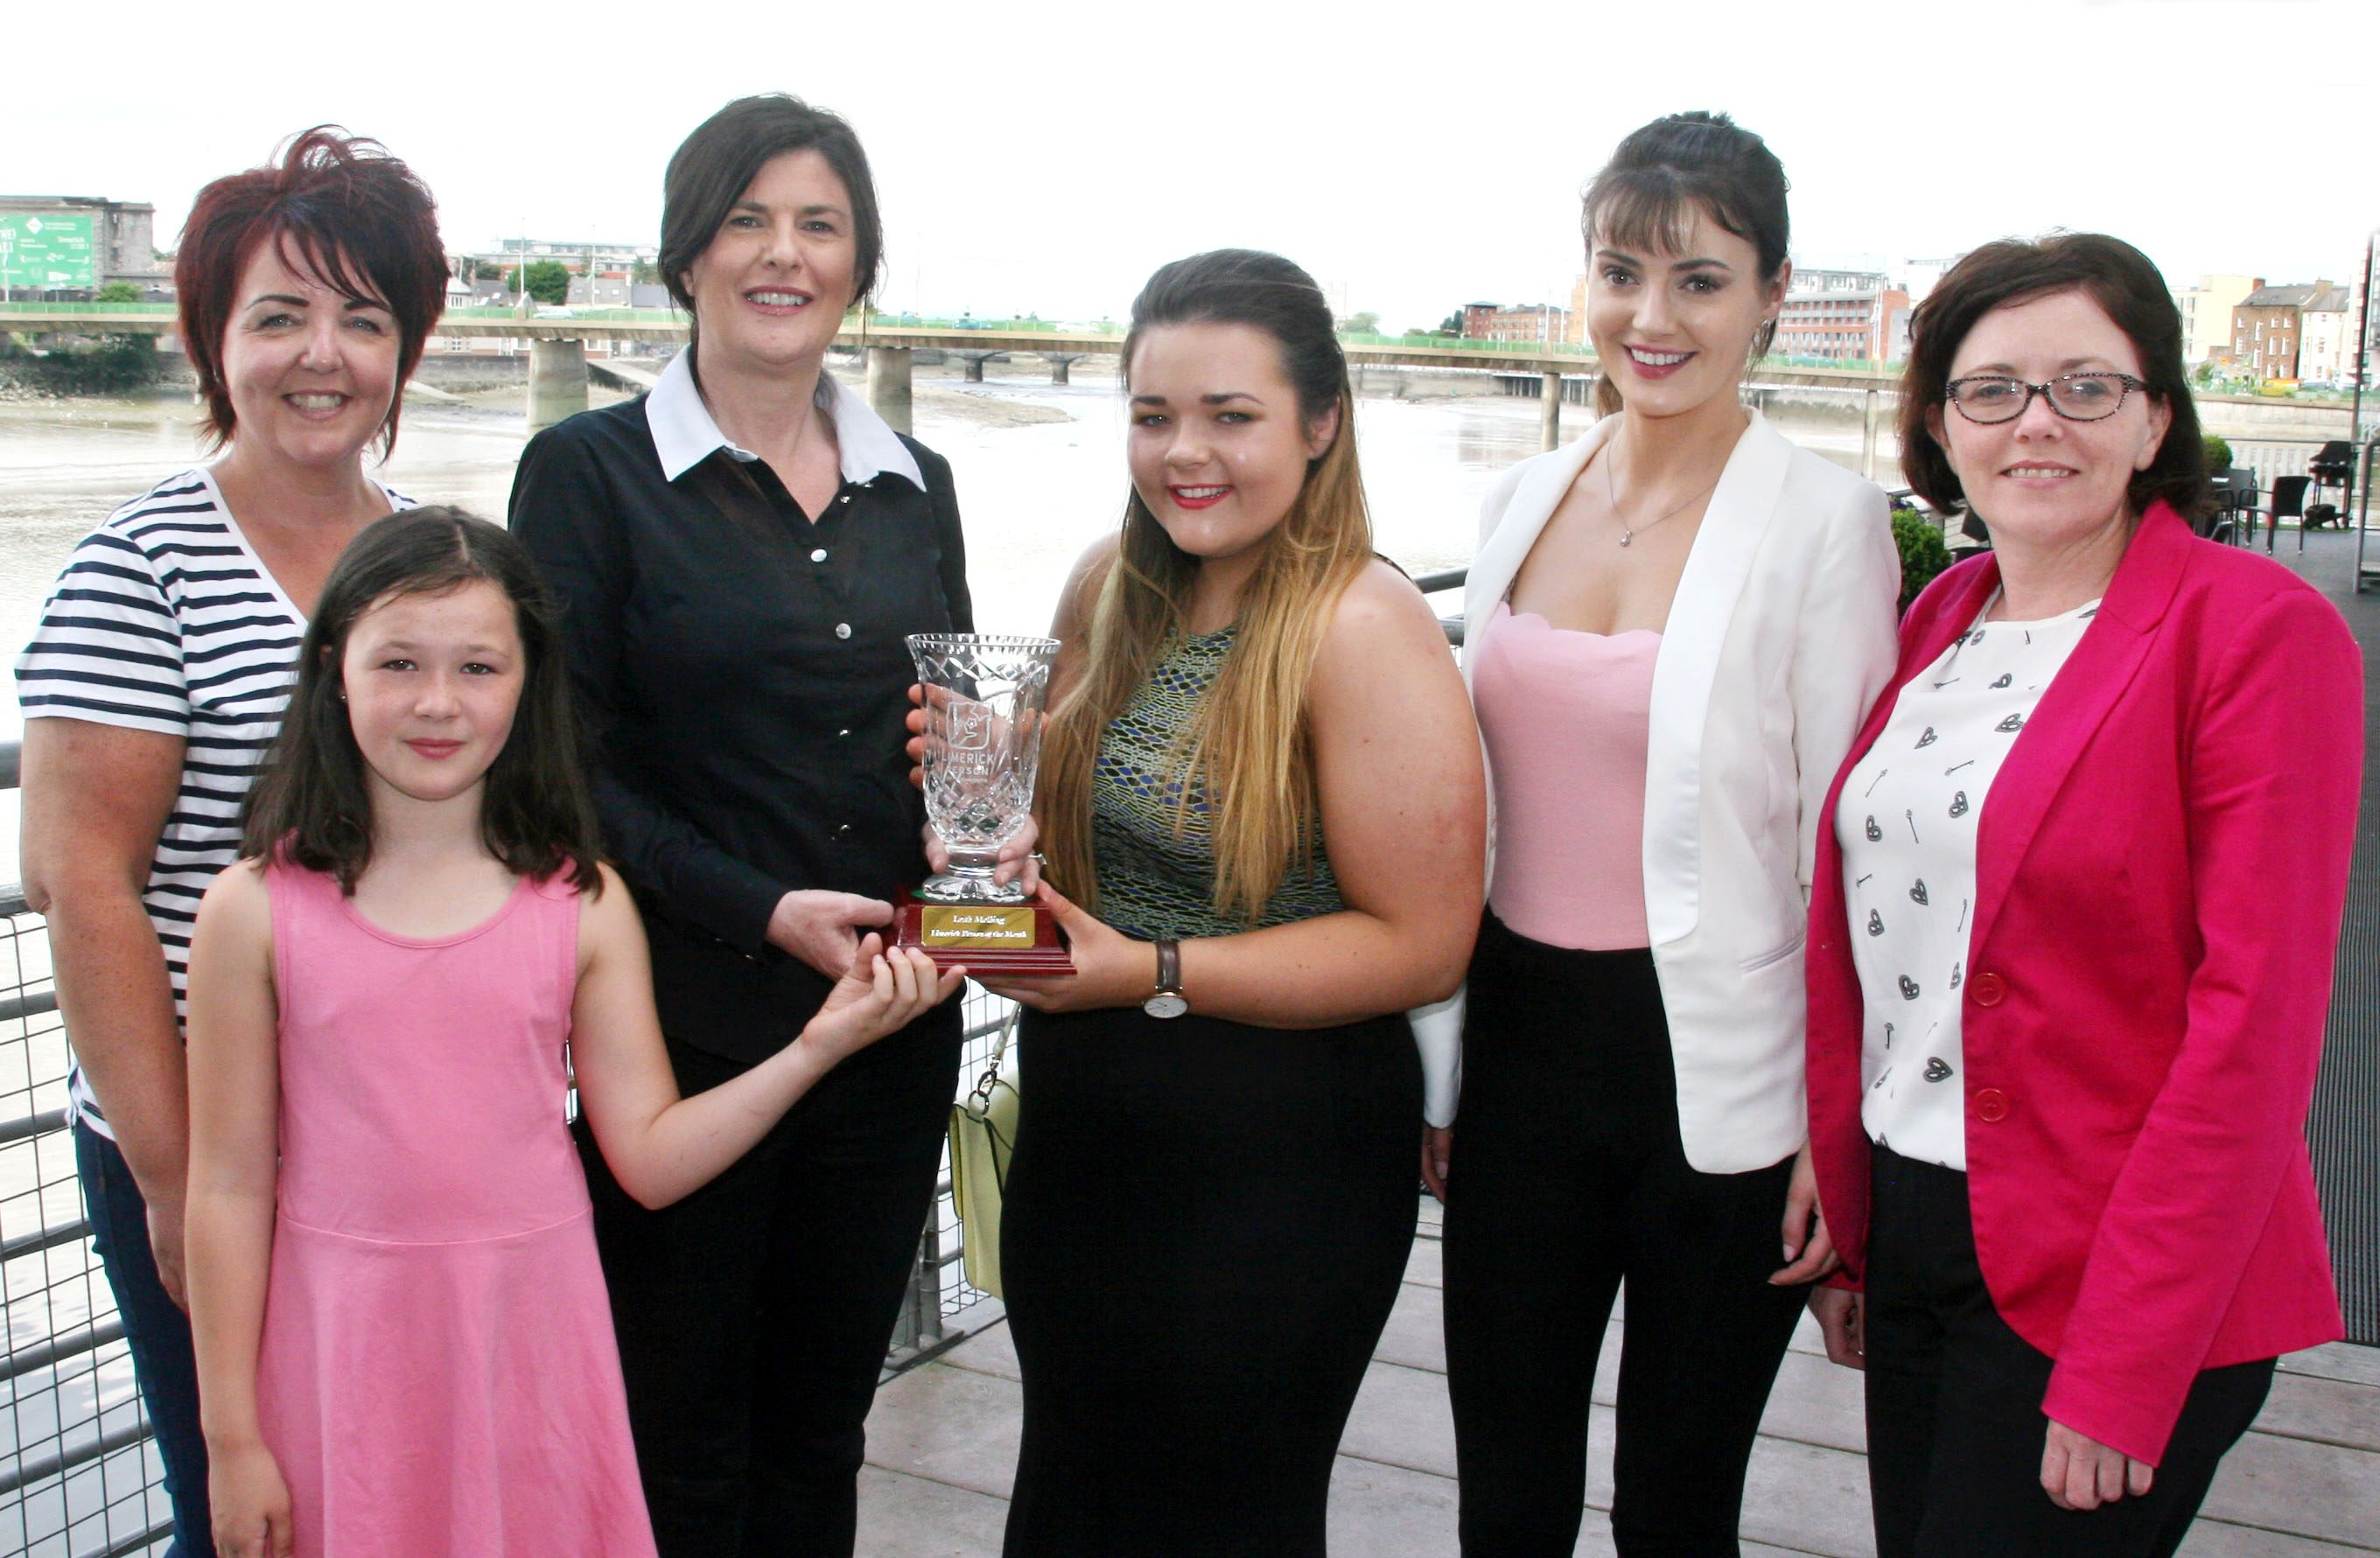 Leah Melling Limerick person of the month